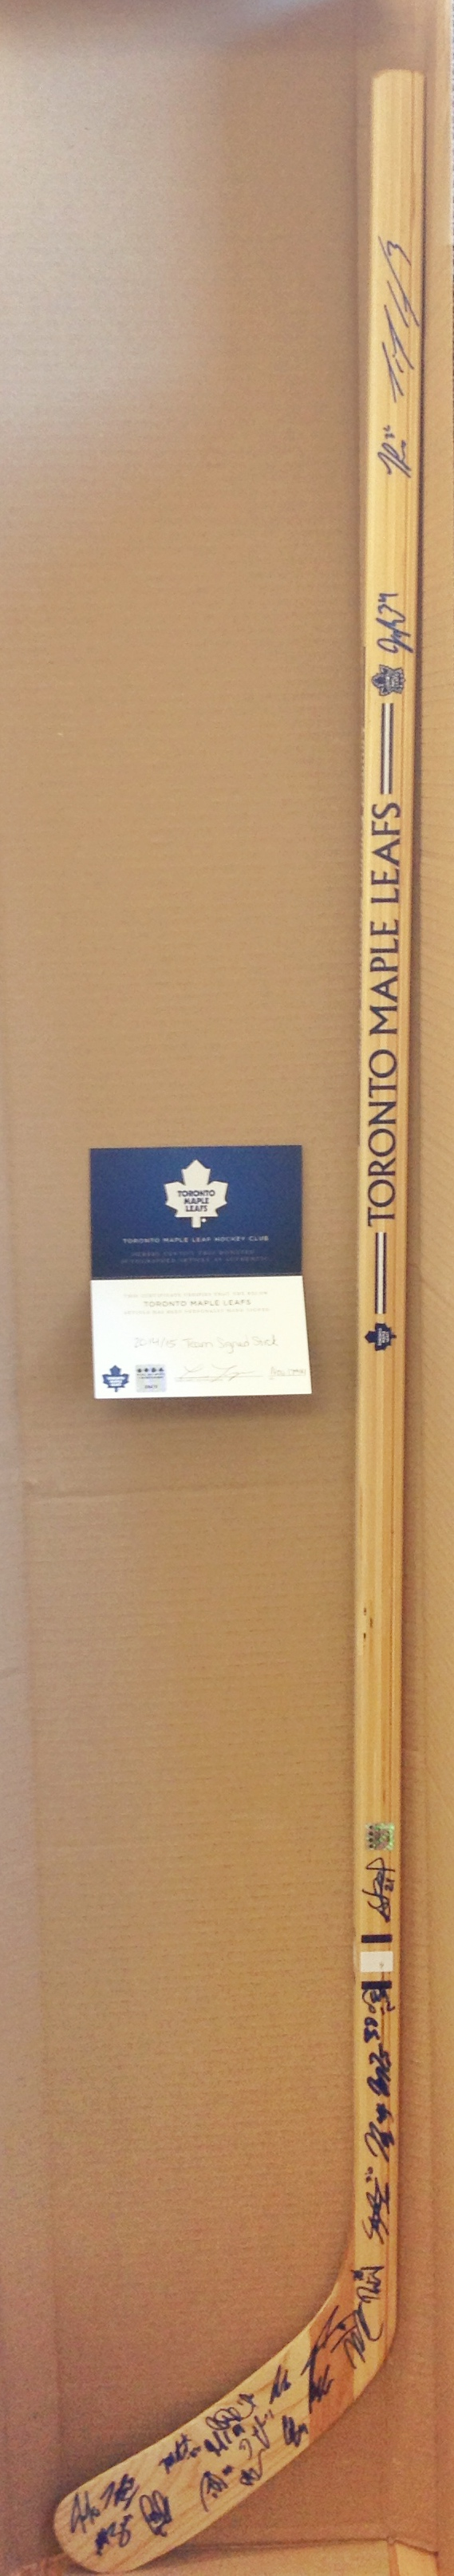 Limited Edition Signature Series hockey stick signed by the Toronto Maple Leafs 2014-15 Team